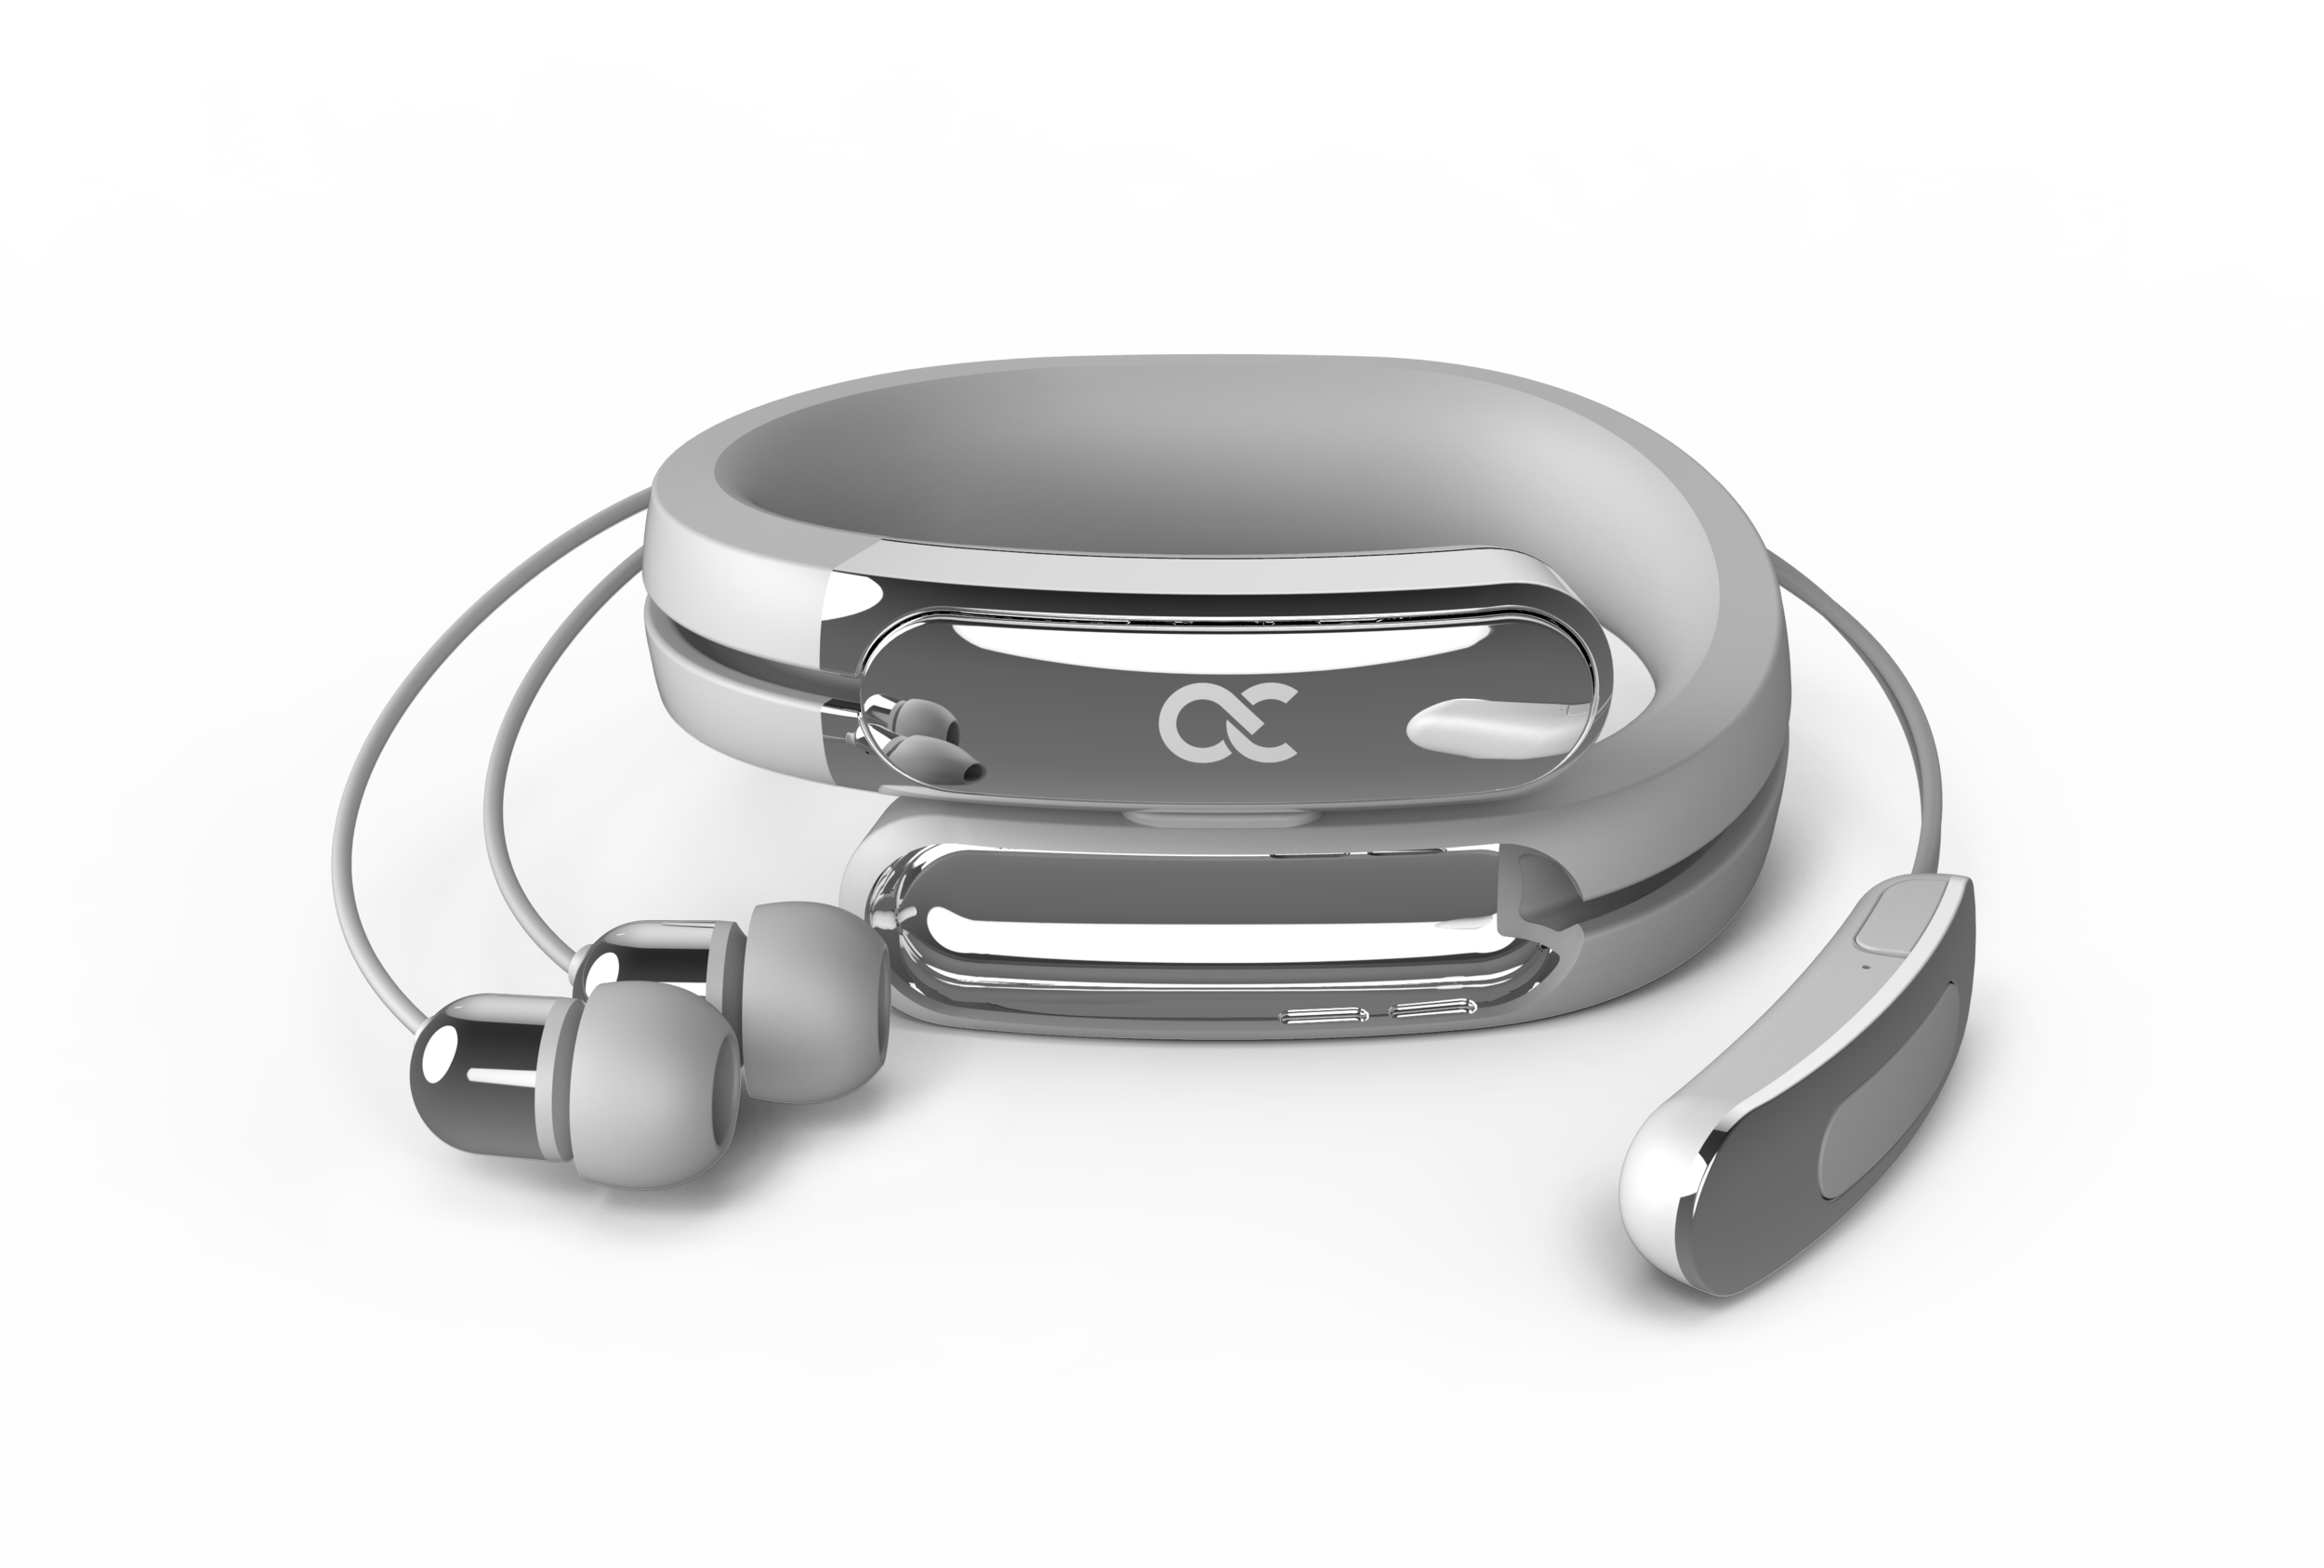 helix-cuff-whitesilver-shadow-13.png